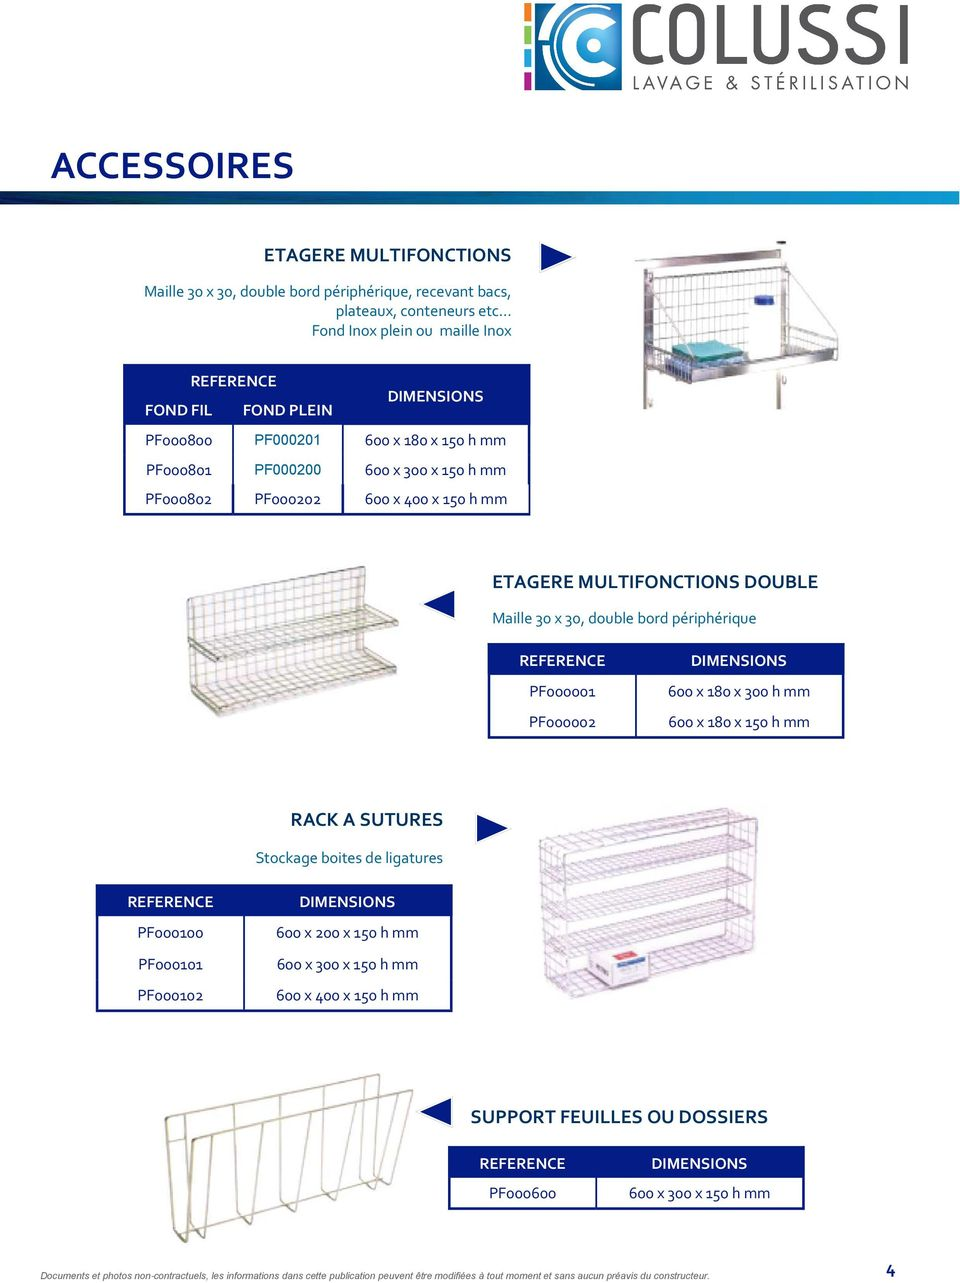 MULTIFONCTIONS DOUBLE Maille 30 x 30, double bord périphérique PF000001 PF000002 600 x 180 x 300 h mm 600 x 180 x 150 h mm RACK A SUTURES Stockage